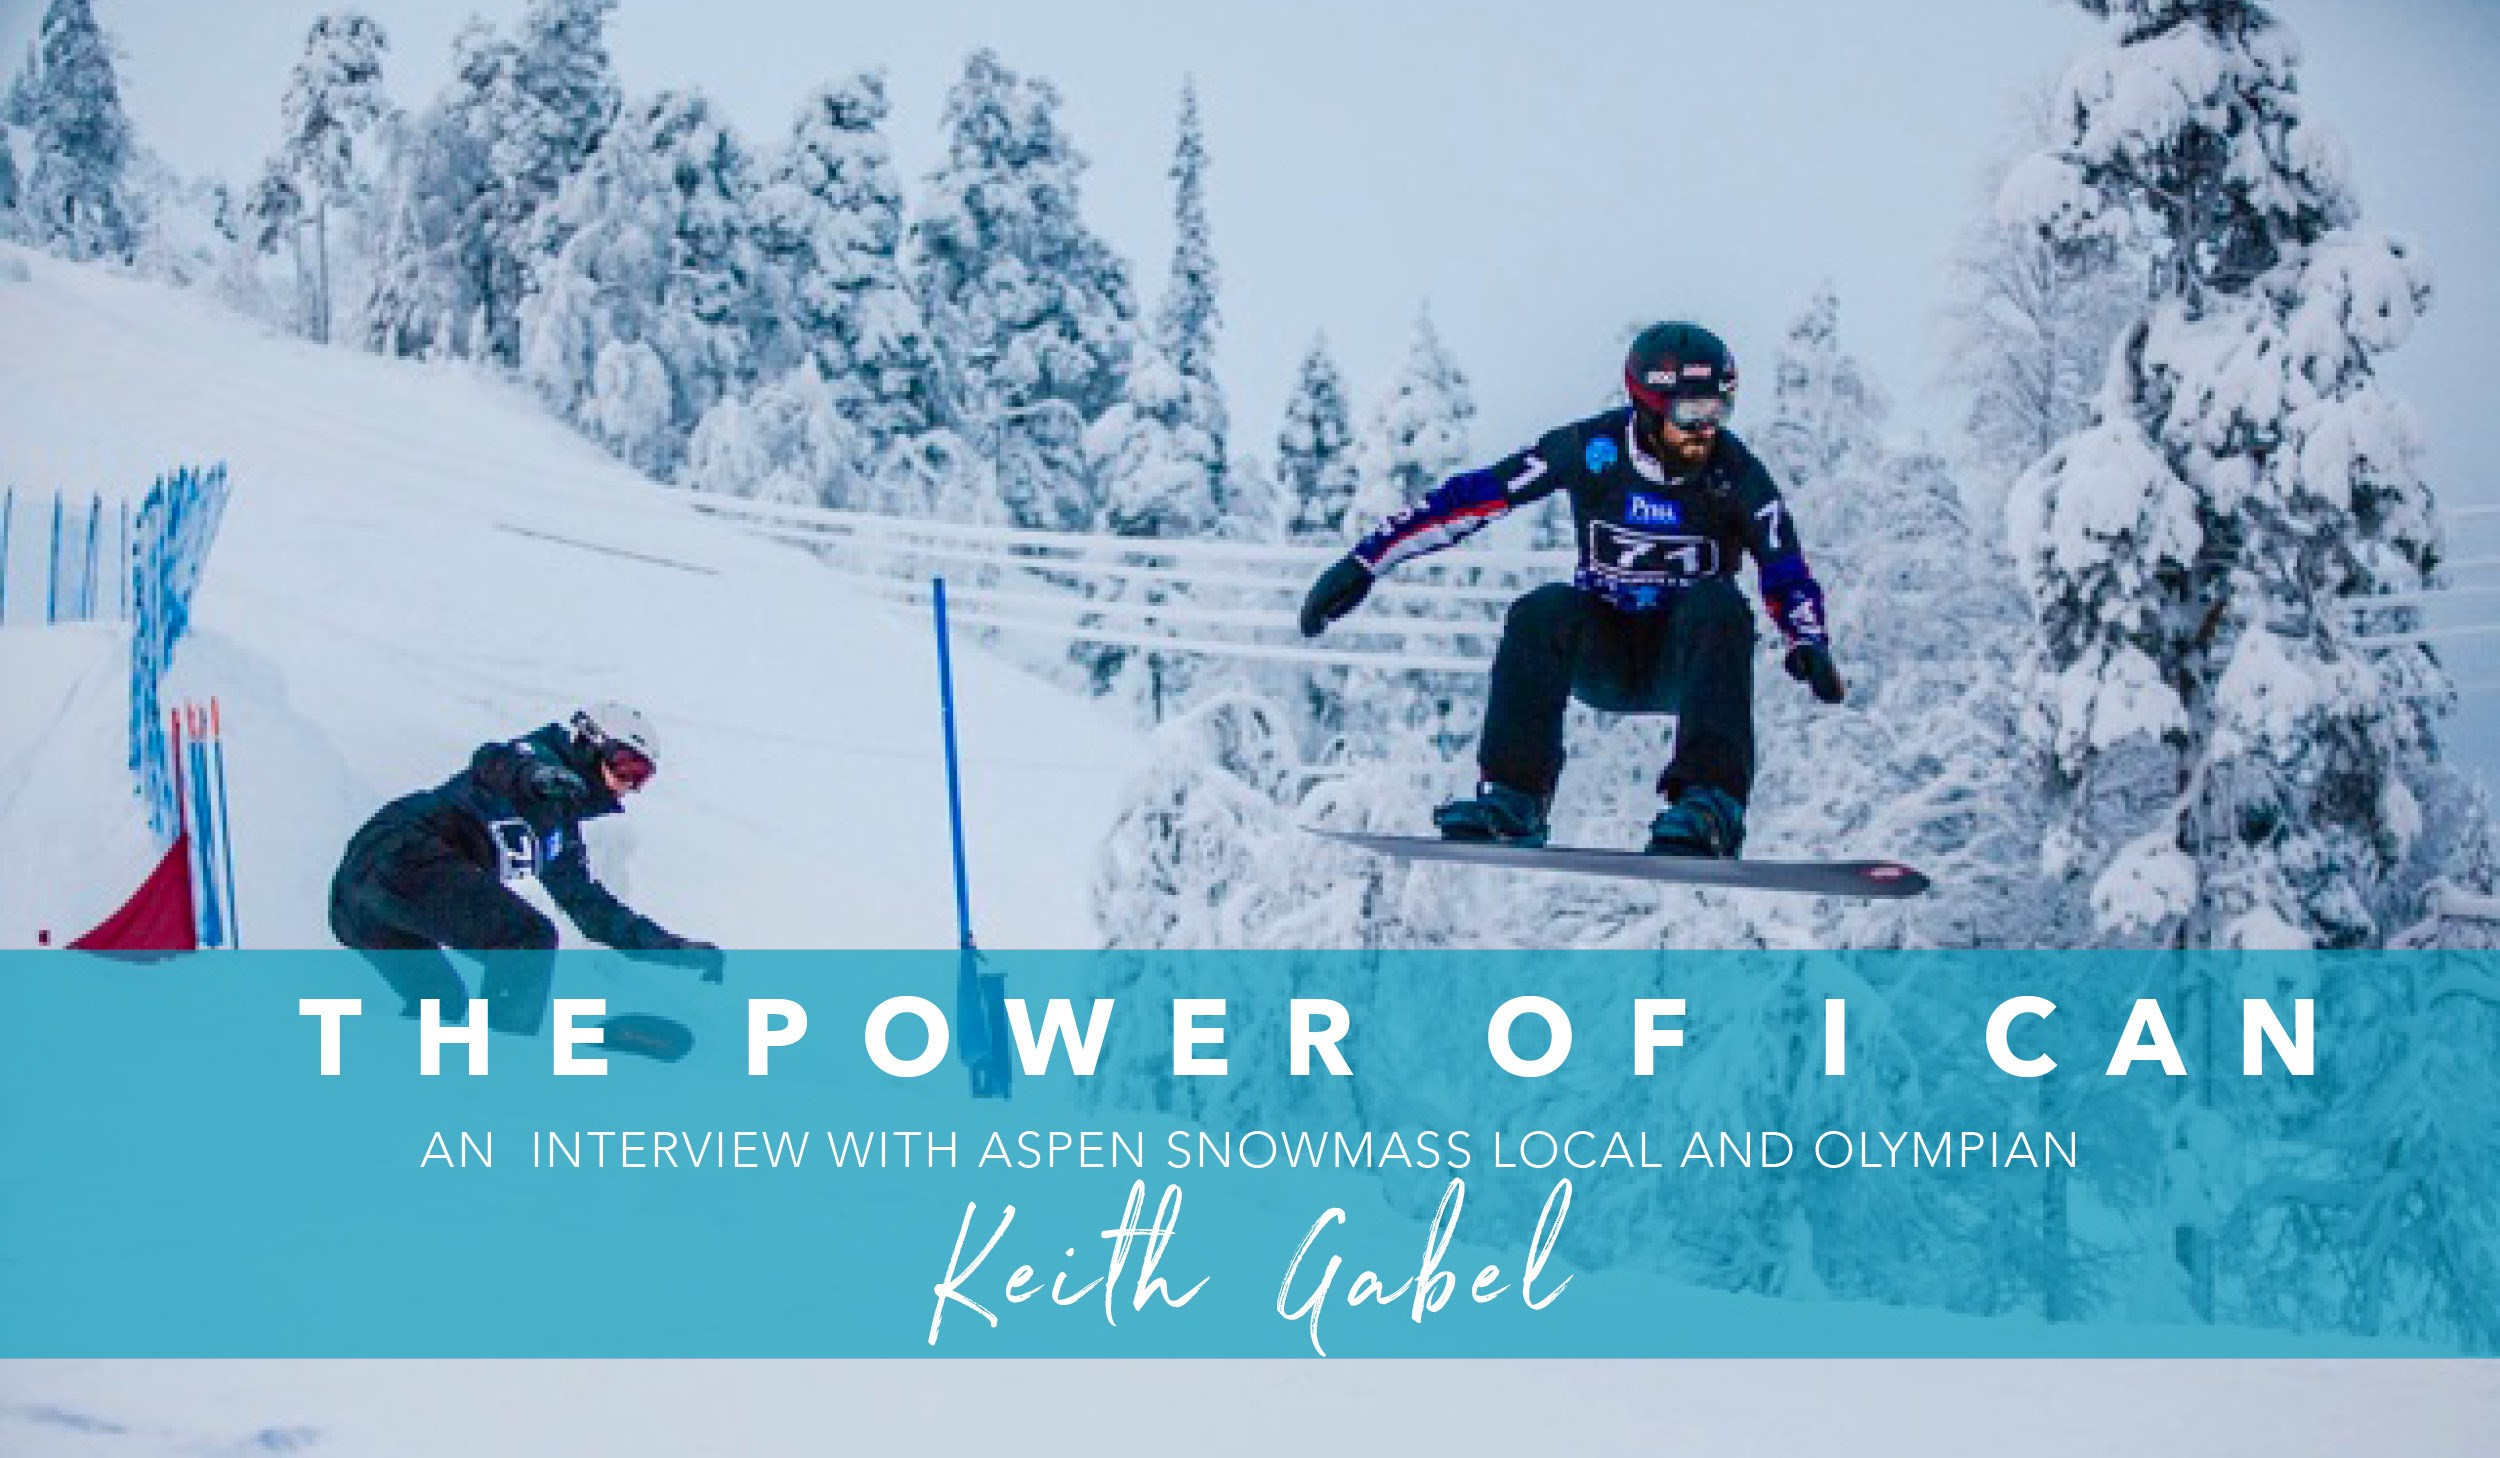 The power of I CAN. An  interview with Aspen Snowmass local and Olympian Keith Gabel.